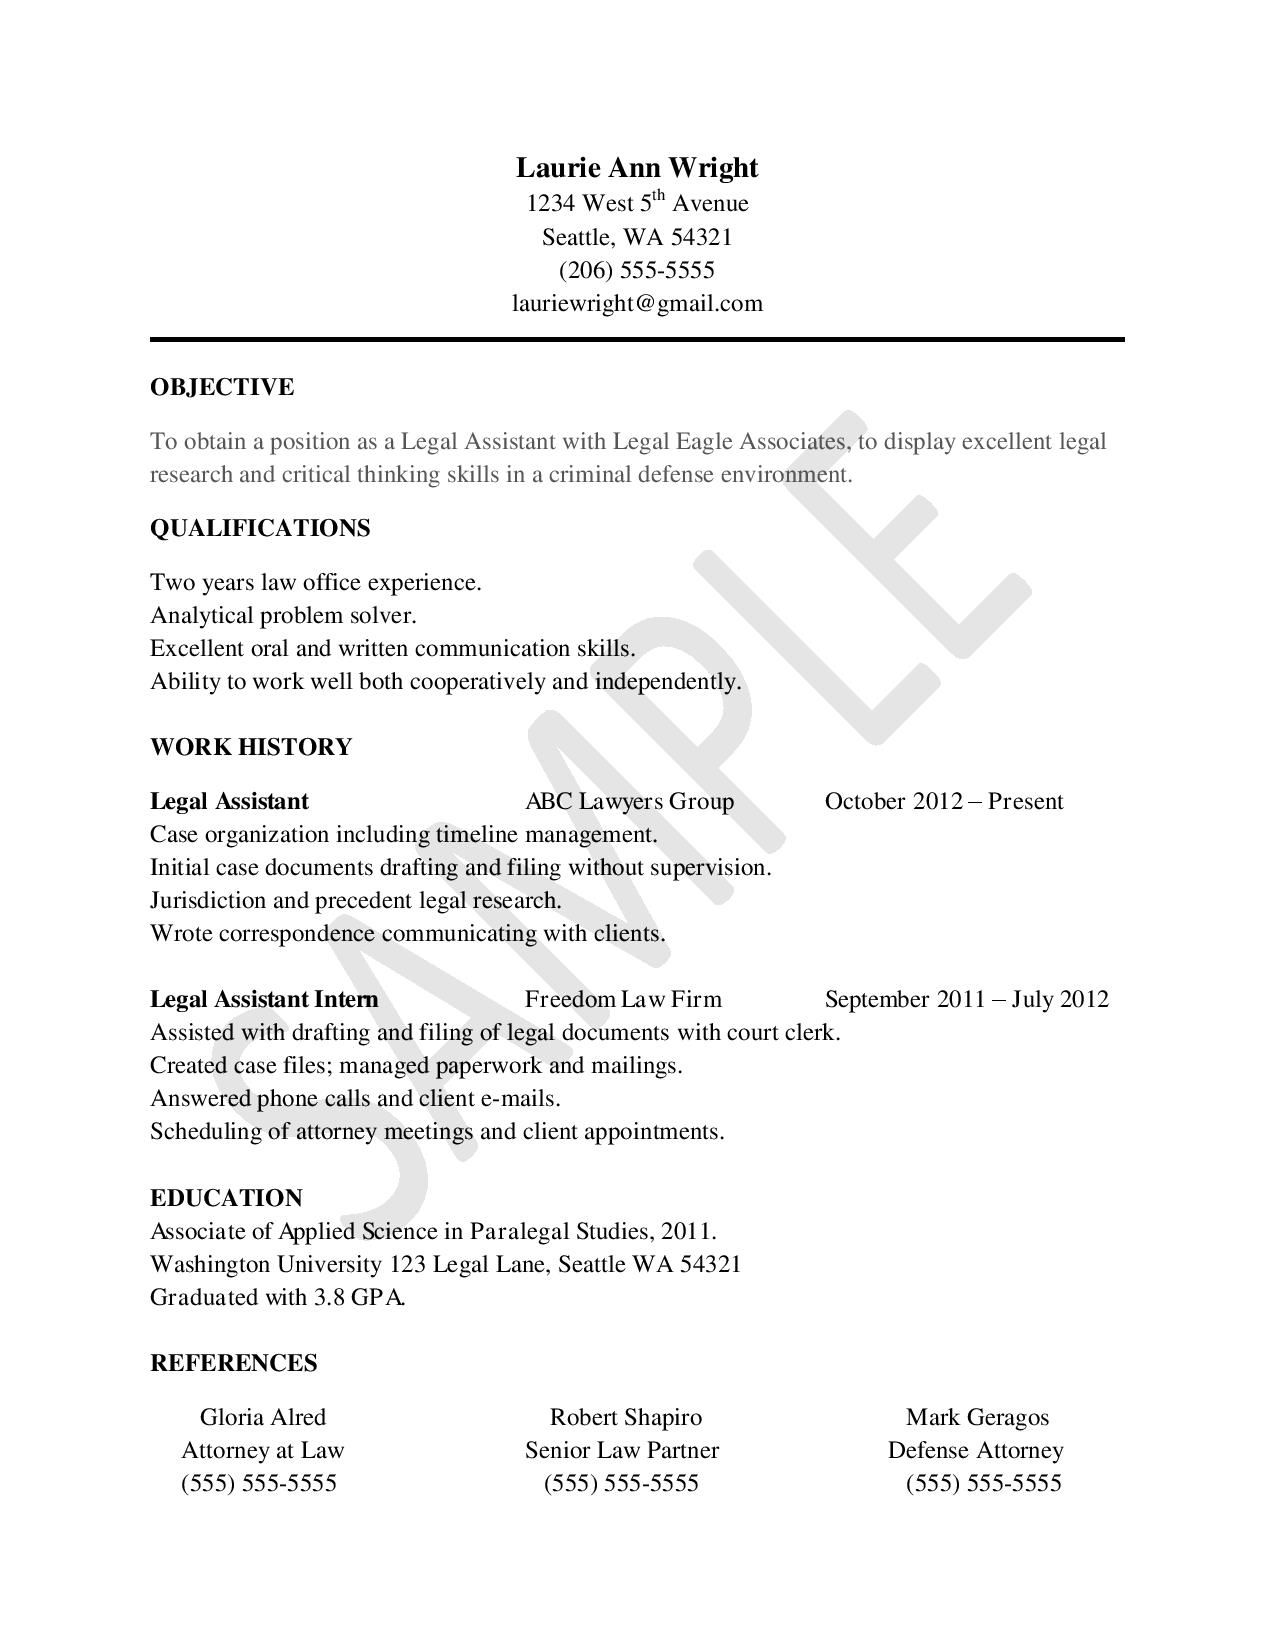 Example Of A Job Resume Sample Resume For Legal Assistants  Legalassistant